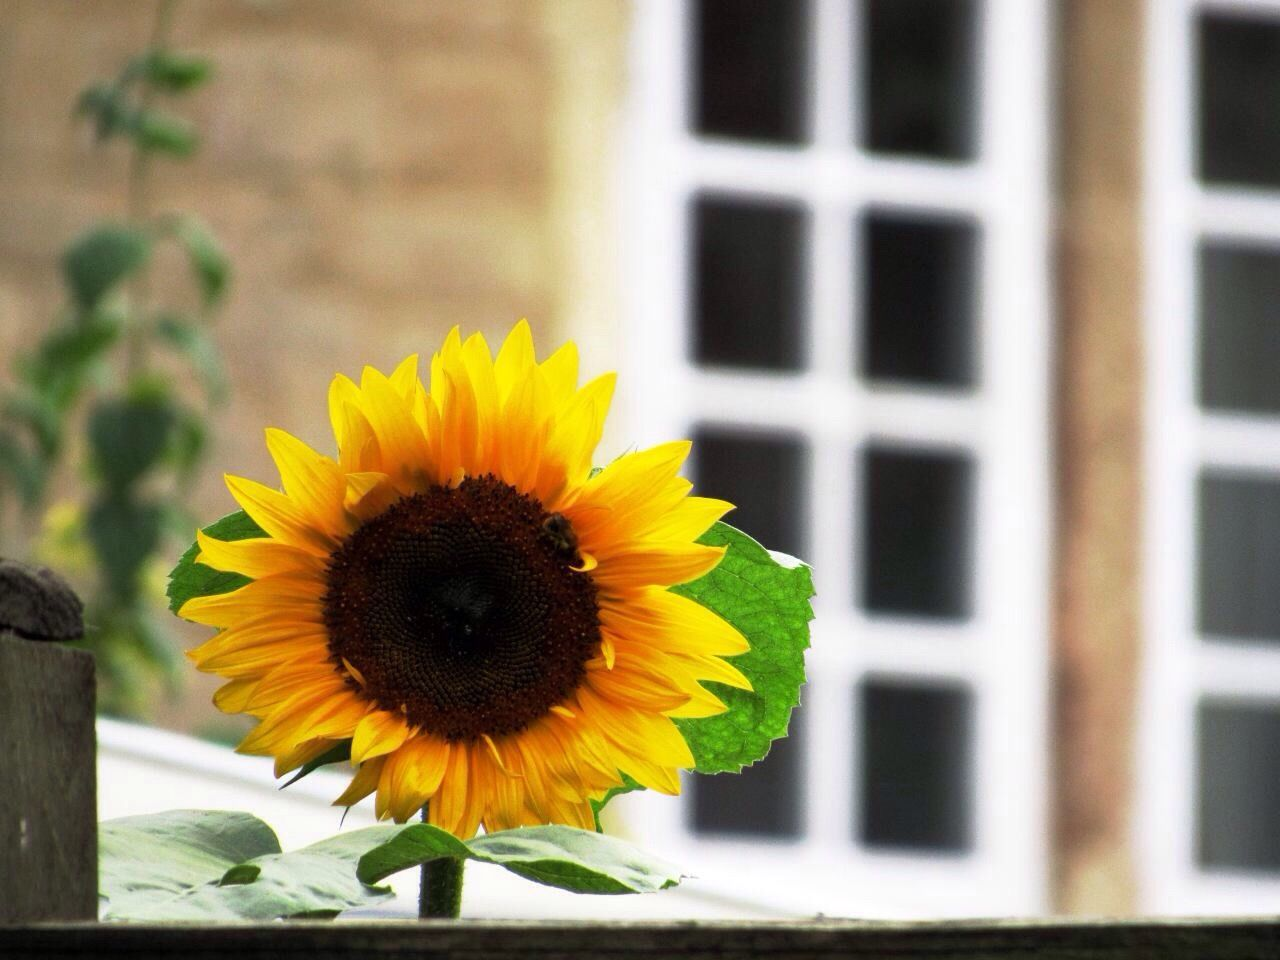 flower, yellow, fragility, petal, beauty in nature, nature, freshness, flower head, sunflower, plant, growth, blooming, outdoors, no people, close-up, day, built structure, building exterior, architecture, black-eyed susan